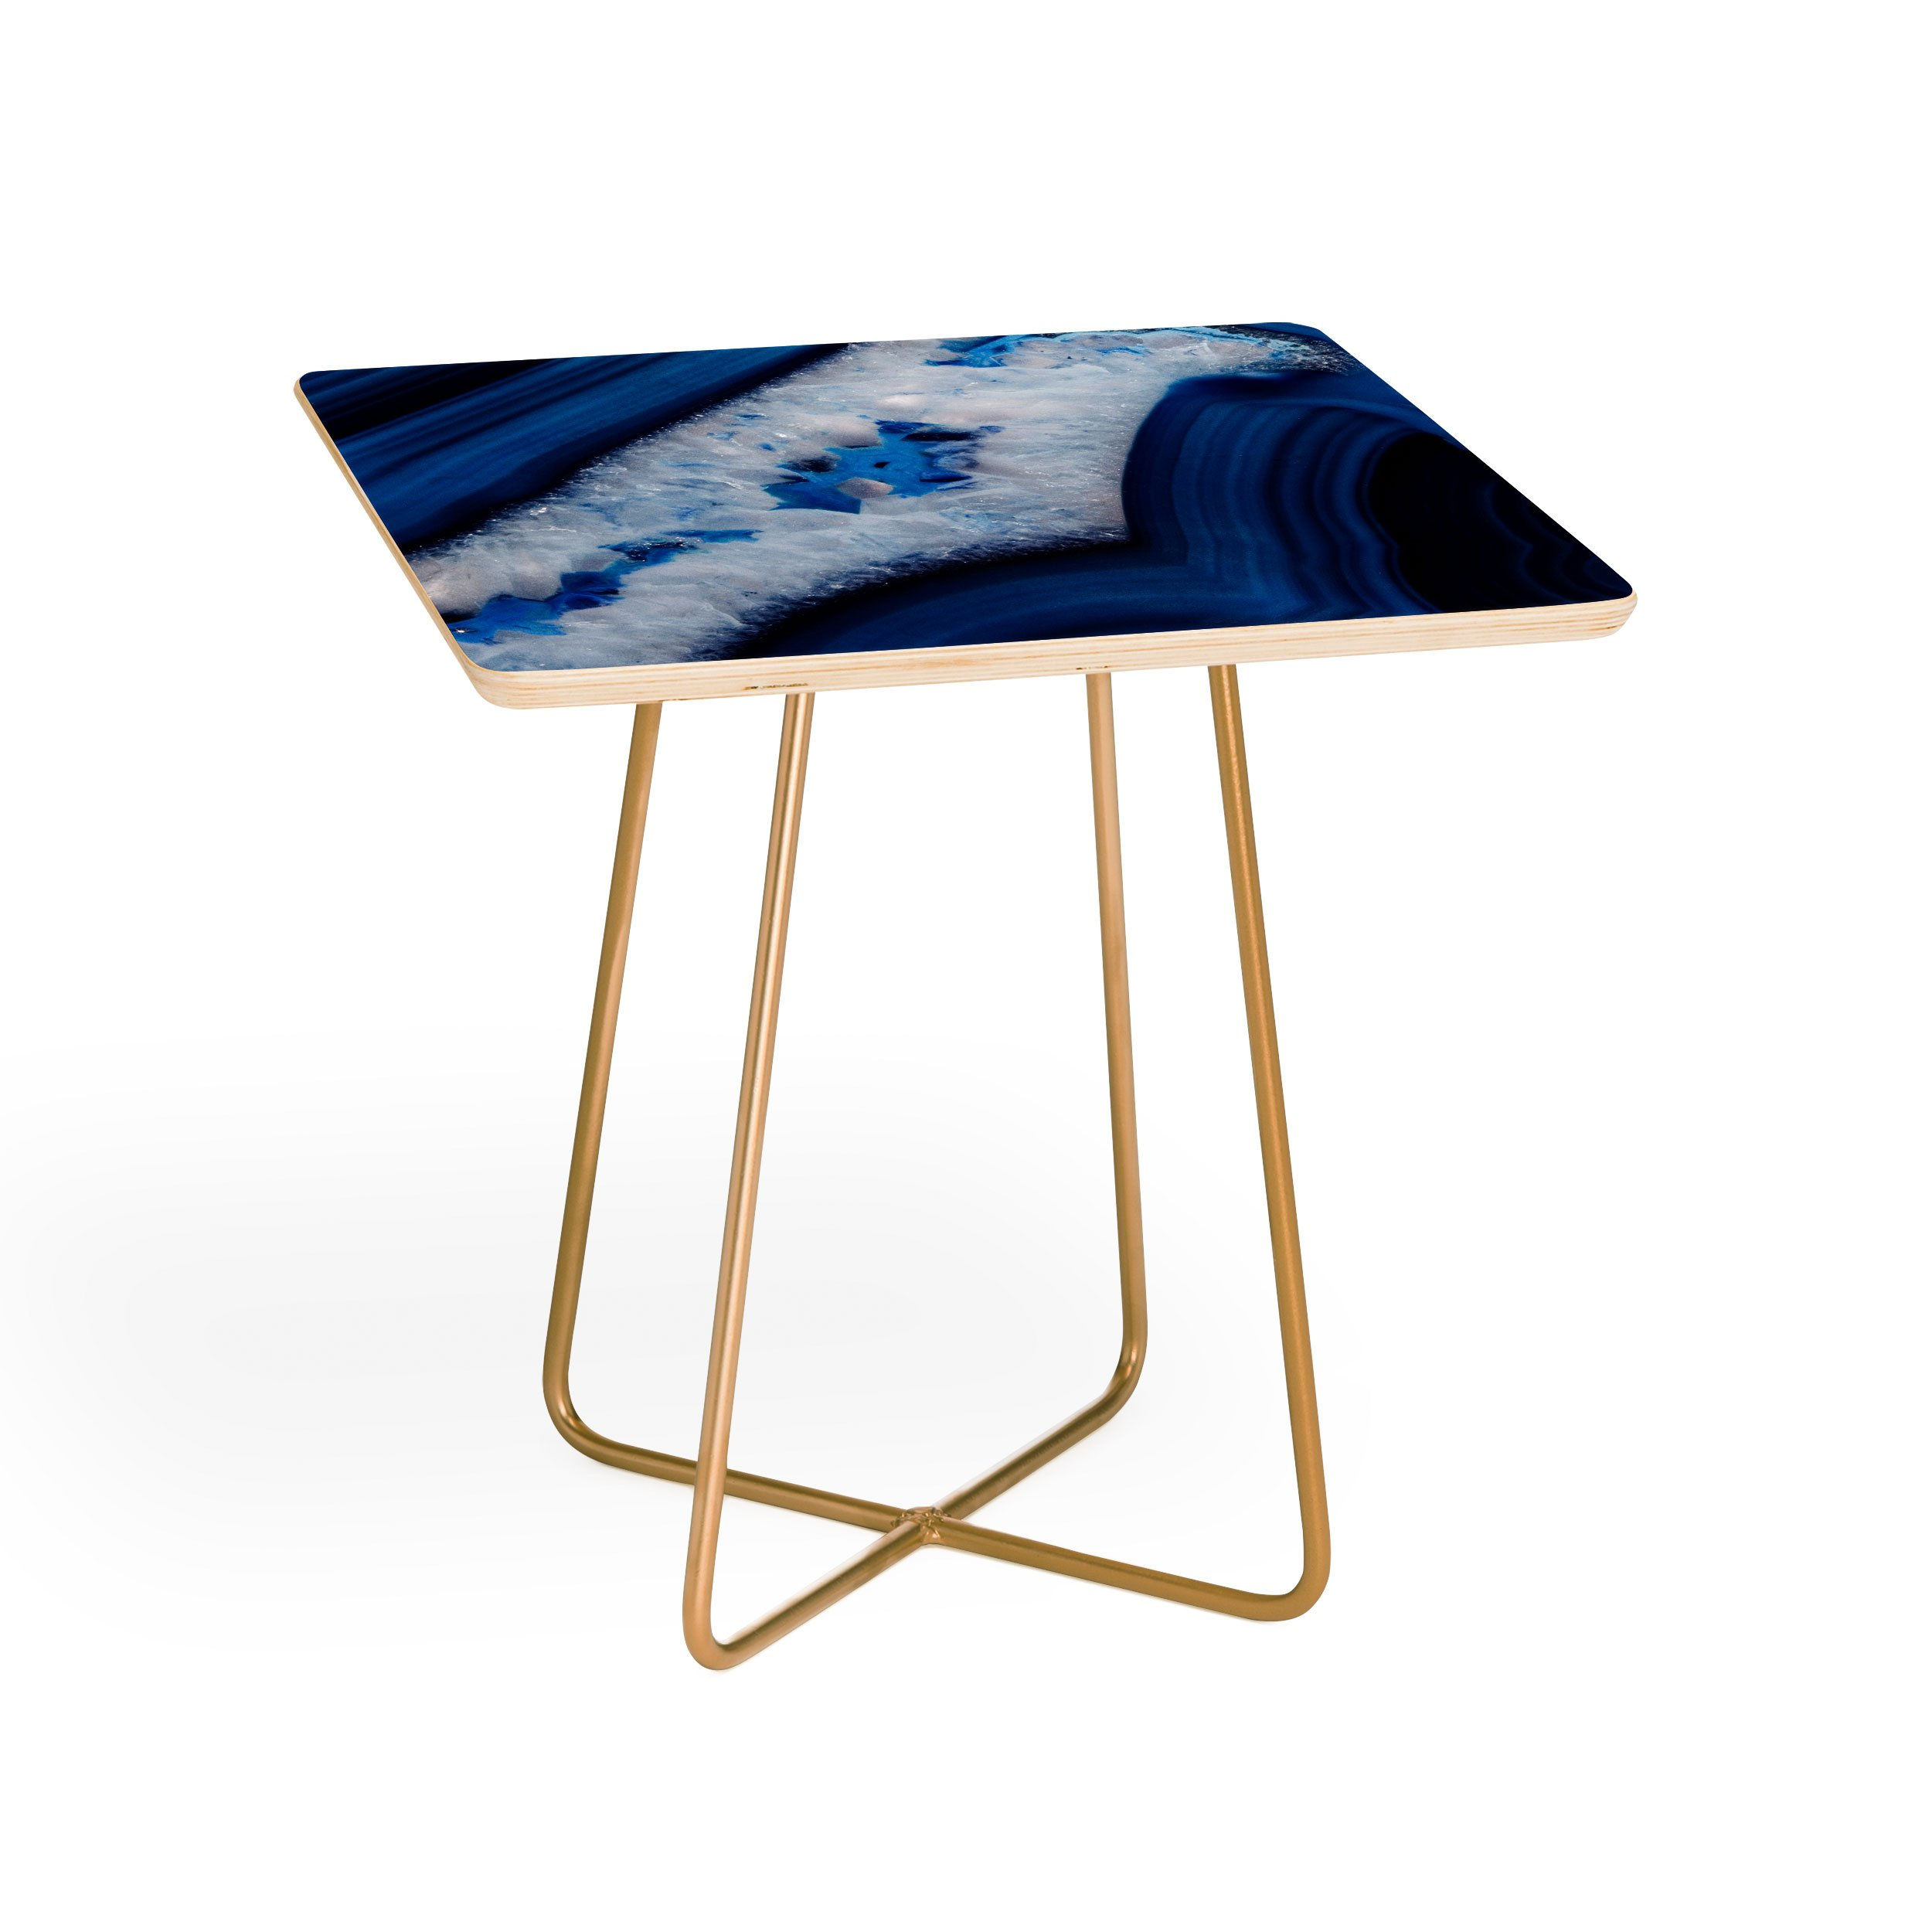 deep blue agate side table emanuela carratoni square white background aston gold accent farm style end tables glass nest martin home office furniture affordable leather sofa barn